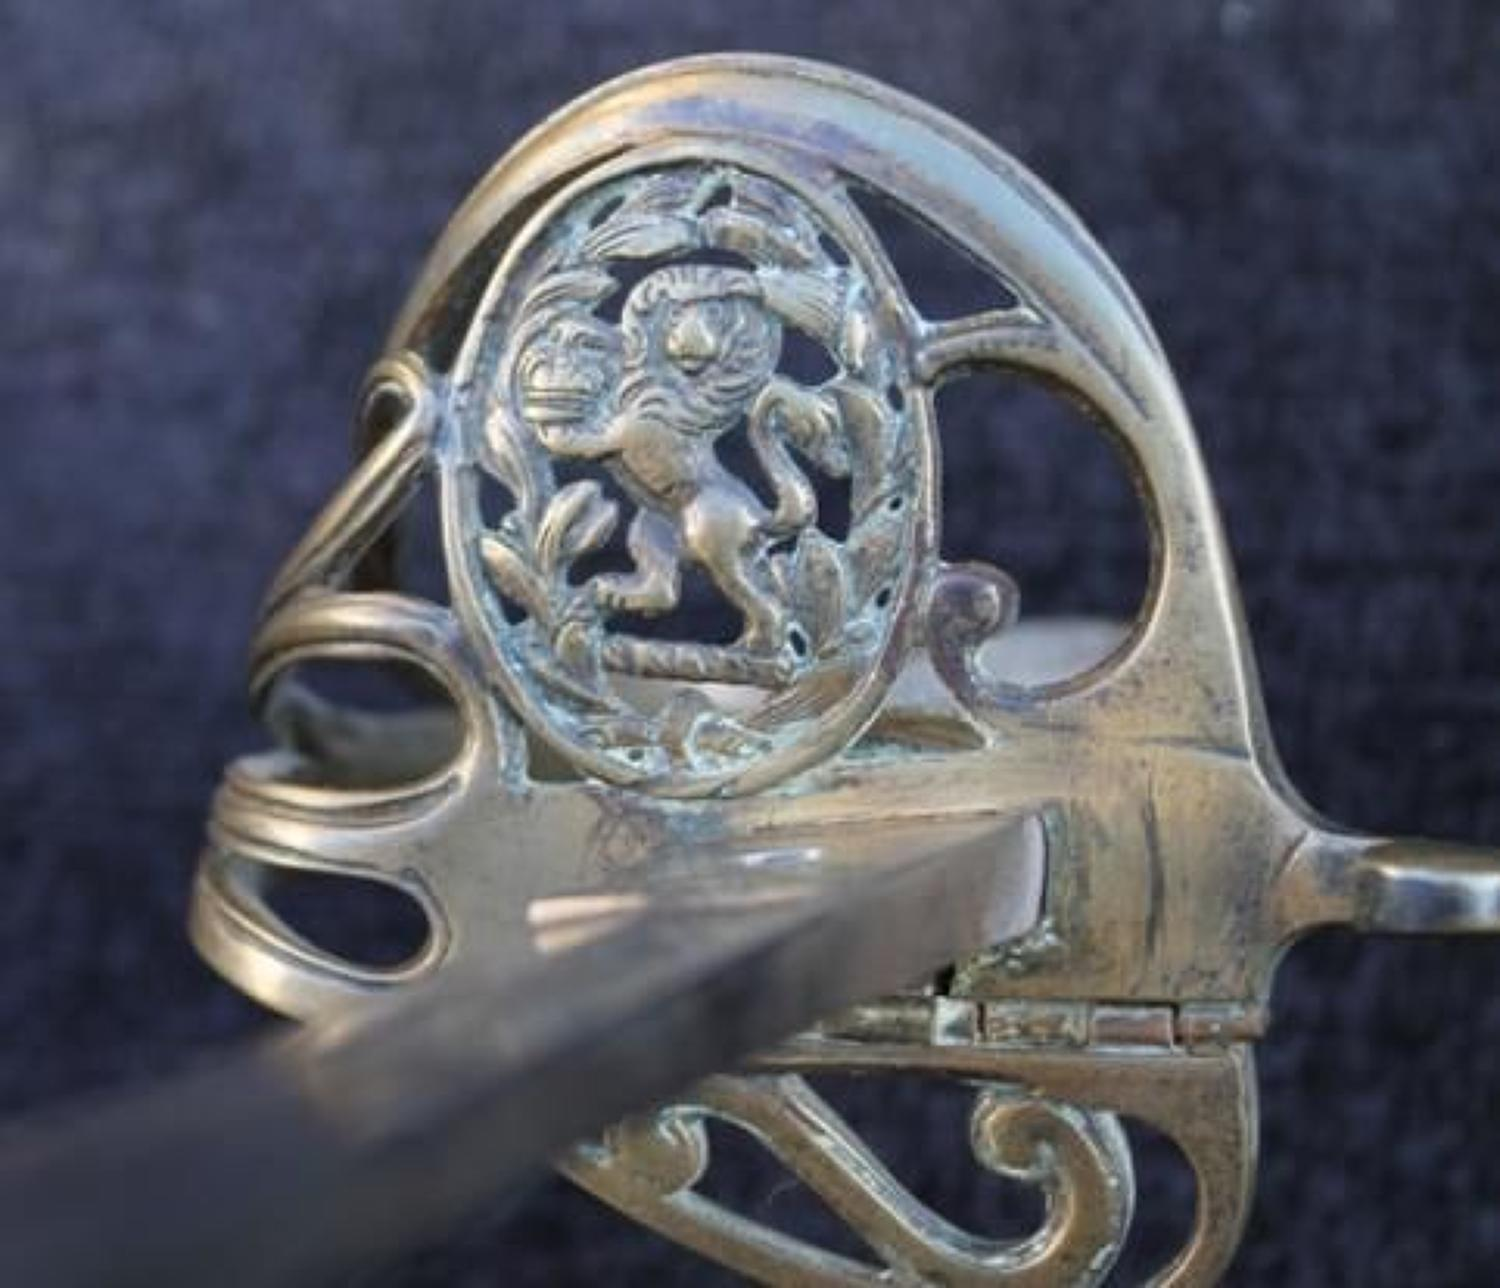 Attributed East India Company Officers Sword